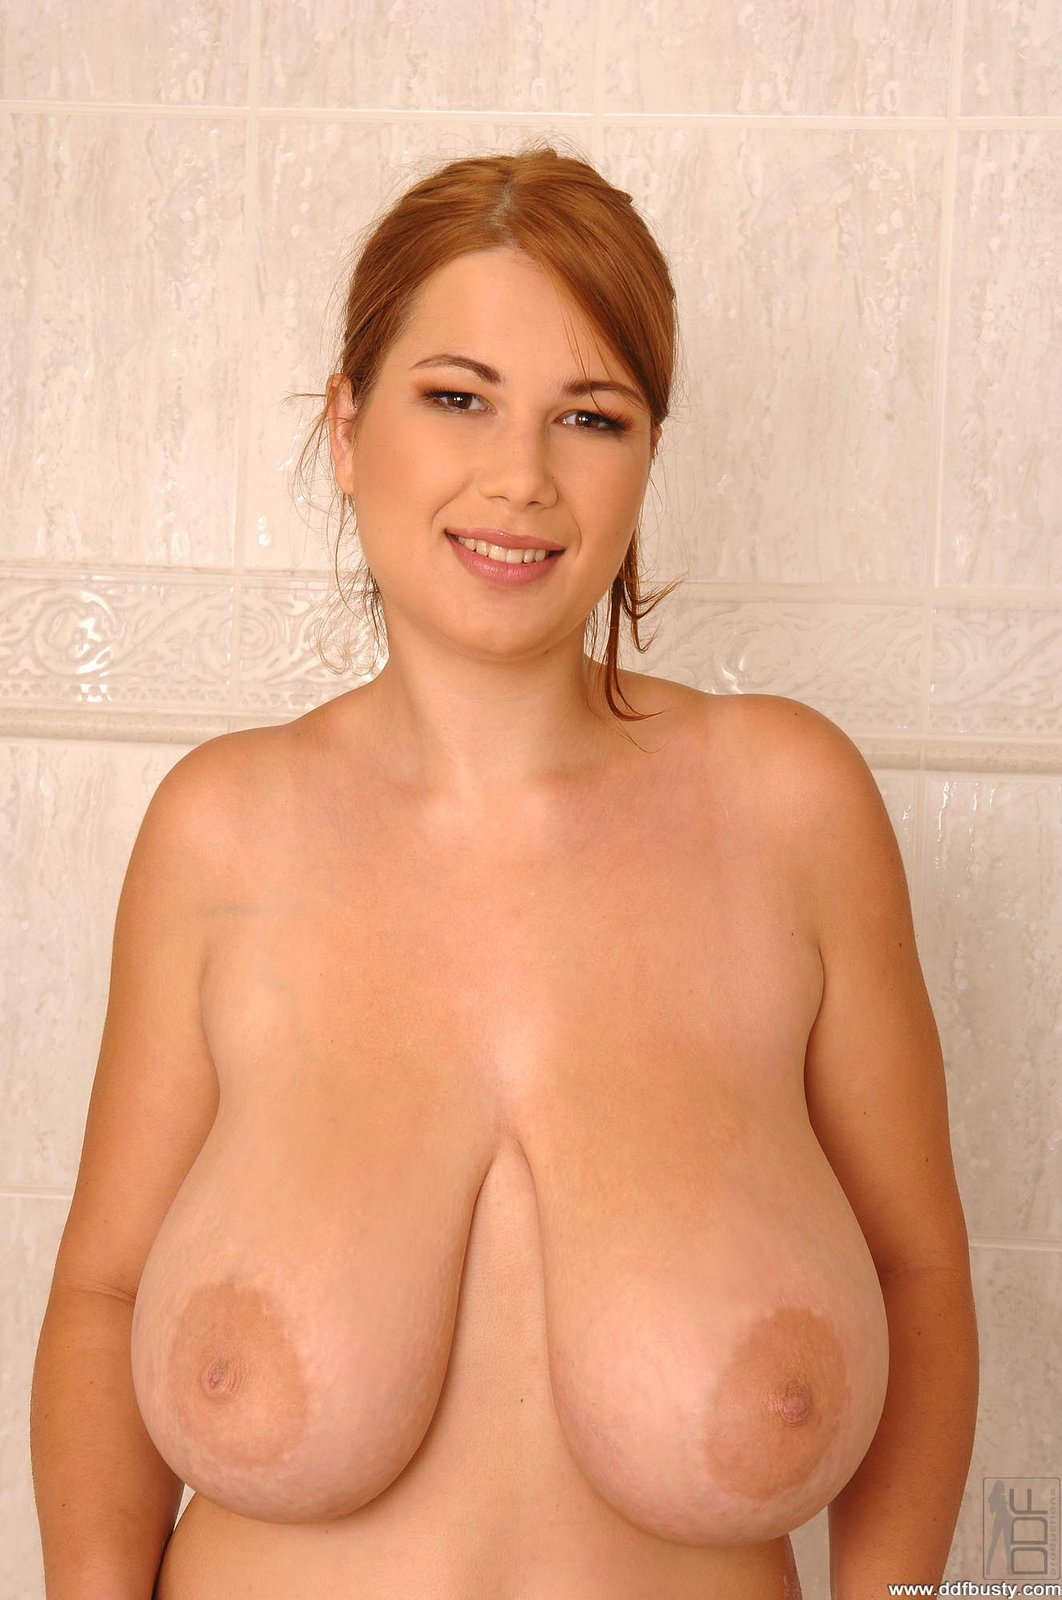 Terry Nova Playing With Huge Natural Tits In The Bathroom -5008